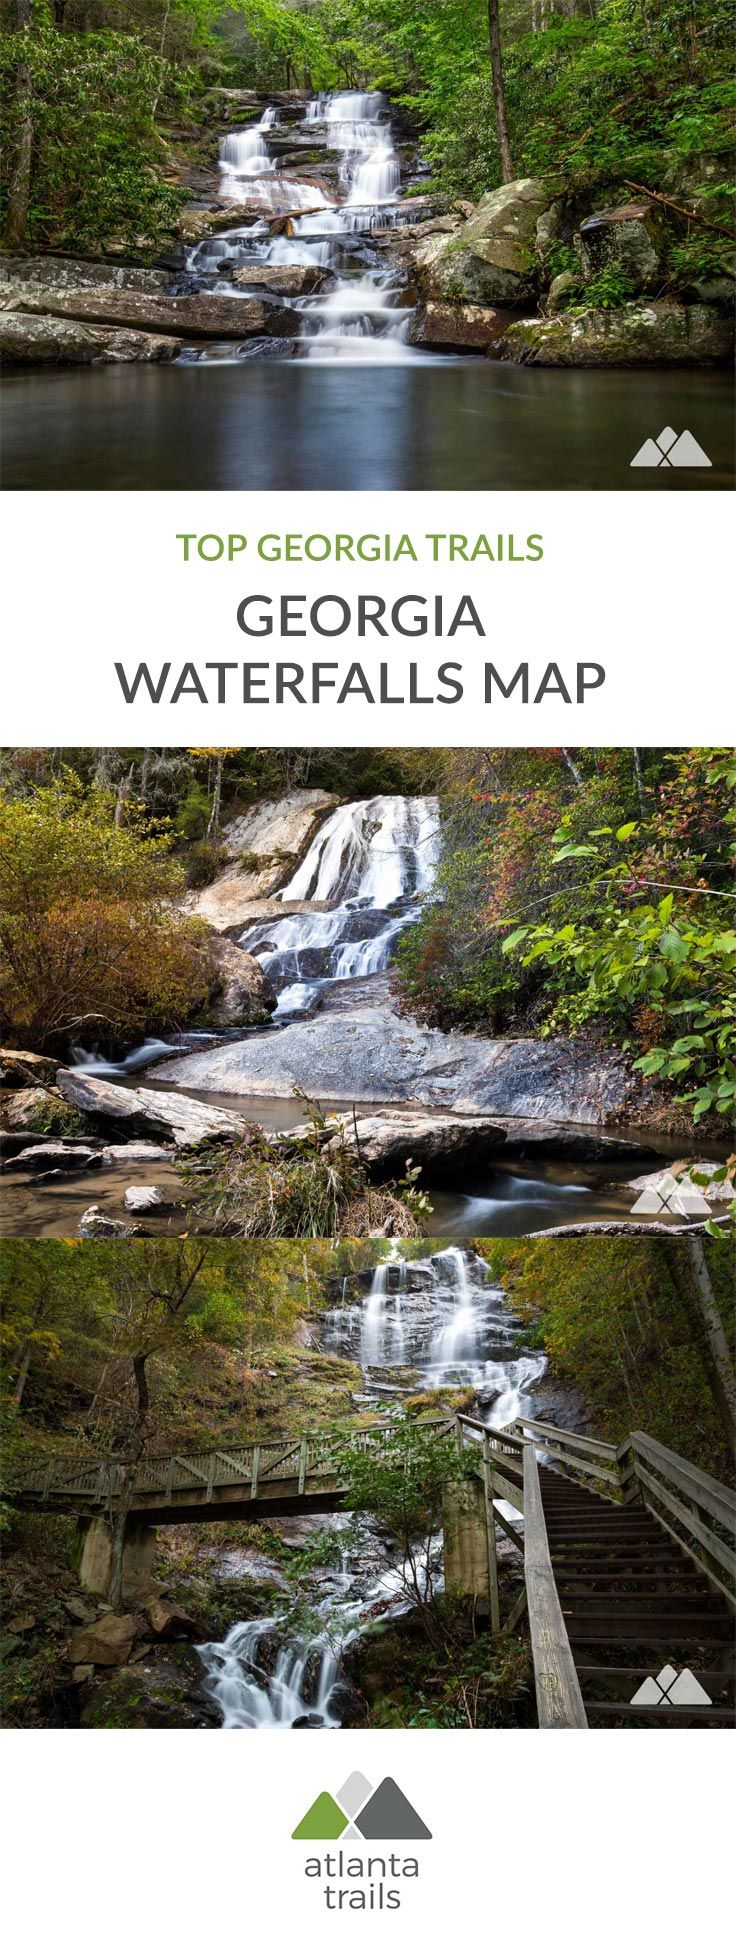 Georgia Waterfalls Map - more than 50 top waterfall hikes ... on georgia hiking trails with waterfalls, georgia animals map, georgia foliage map, georgia alabama mississippi map, georgia creeks map, georgia fishing map, georgia forests map, georgia art map, georgia russia on map, georgia landmarks map, georgia historical sites map, georgia beach map, blue ridge parkway map, georgia fall scenery, nh new hampshire road map, georgia panther creek waterfalls, chattahoochee national forest trail map, georgia water map, georgia rain map, georgia springs map,